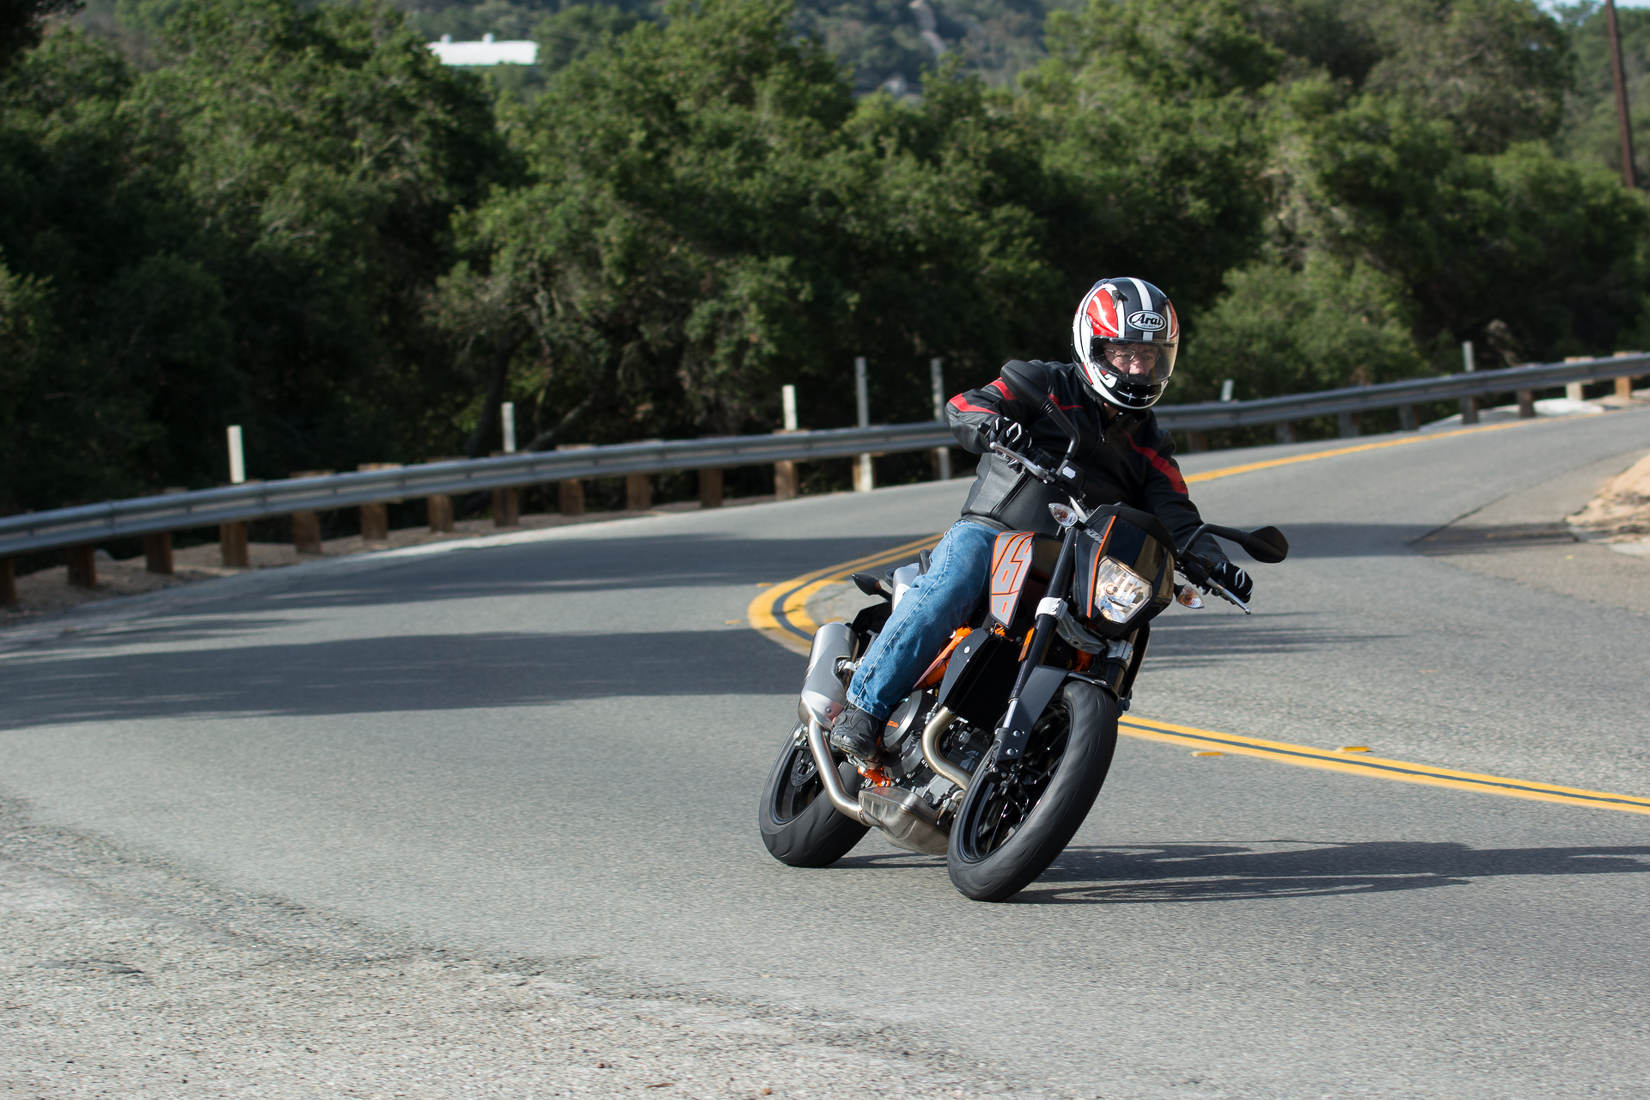 2014 Ktm 690 Duke Md Ride Review Motorcycledaily Com